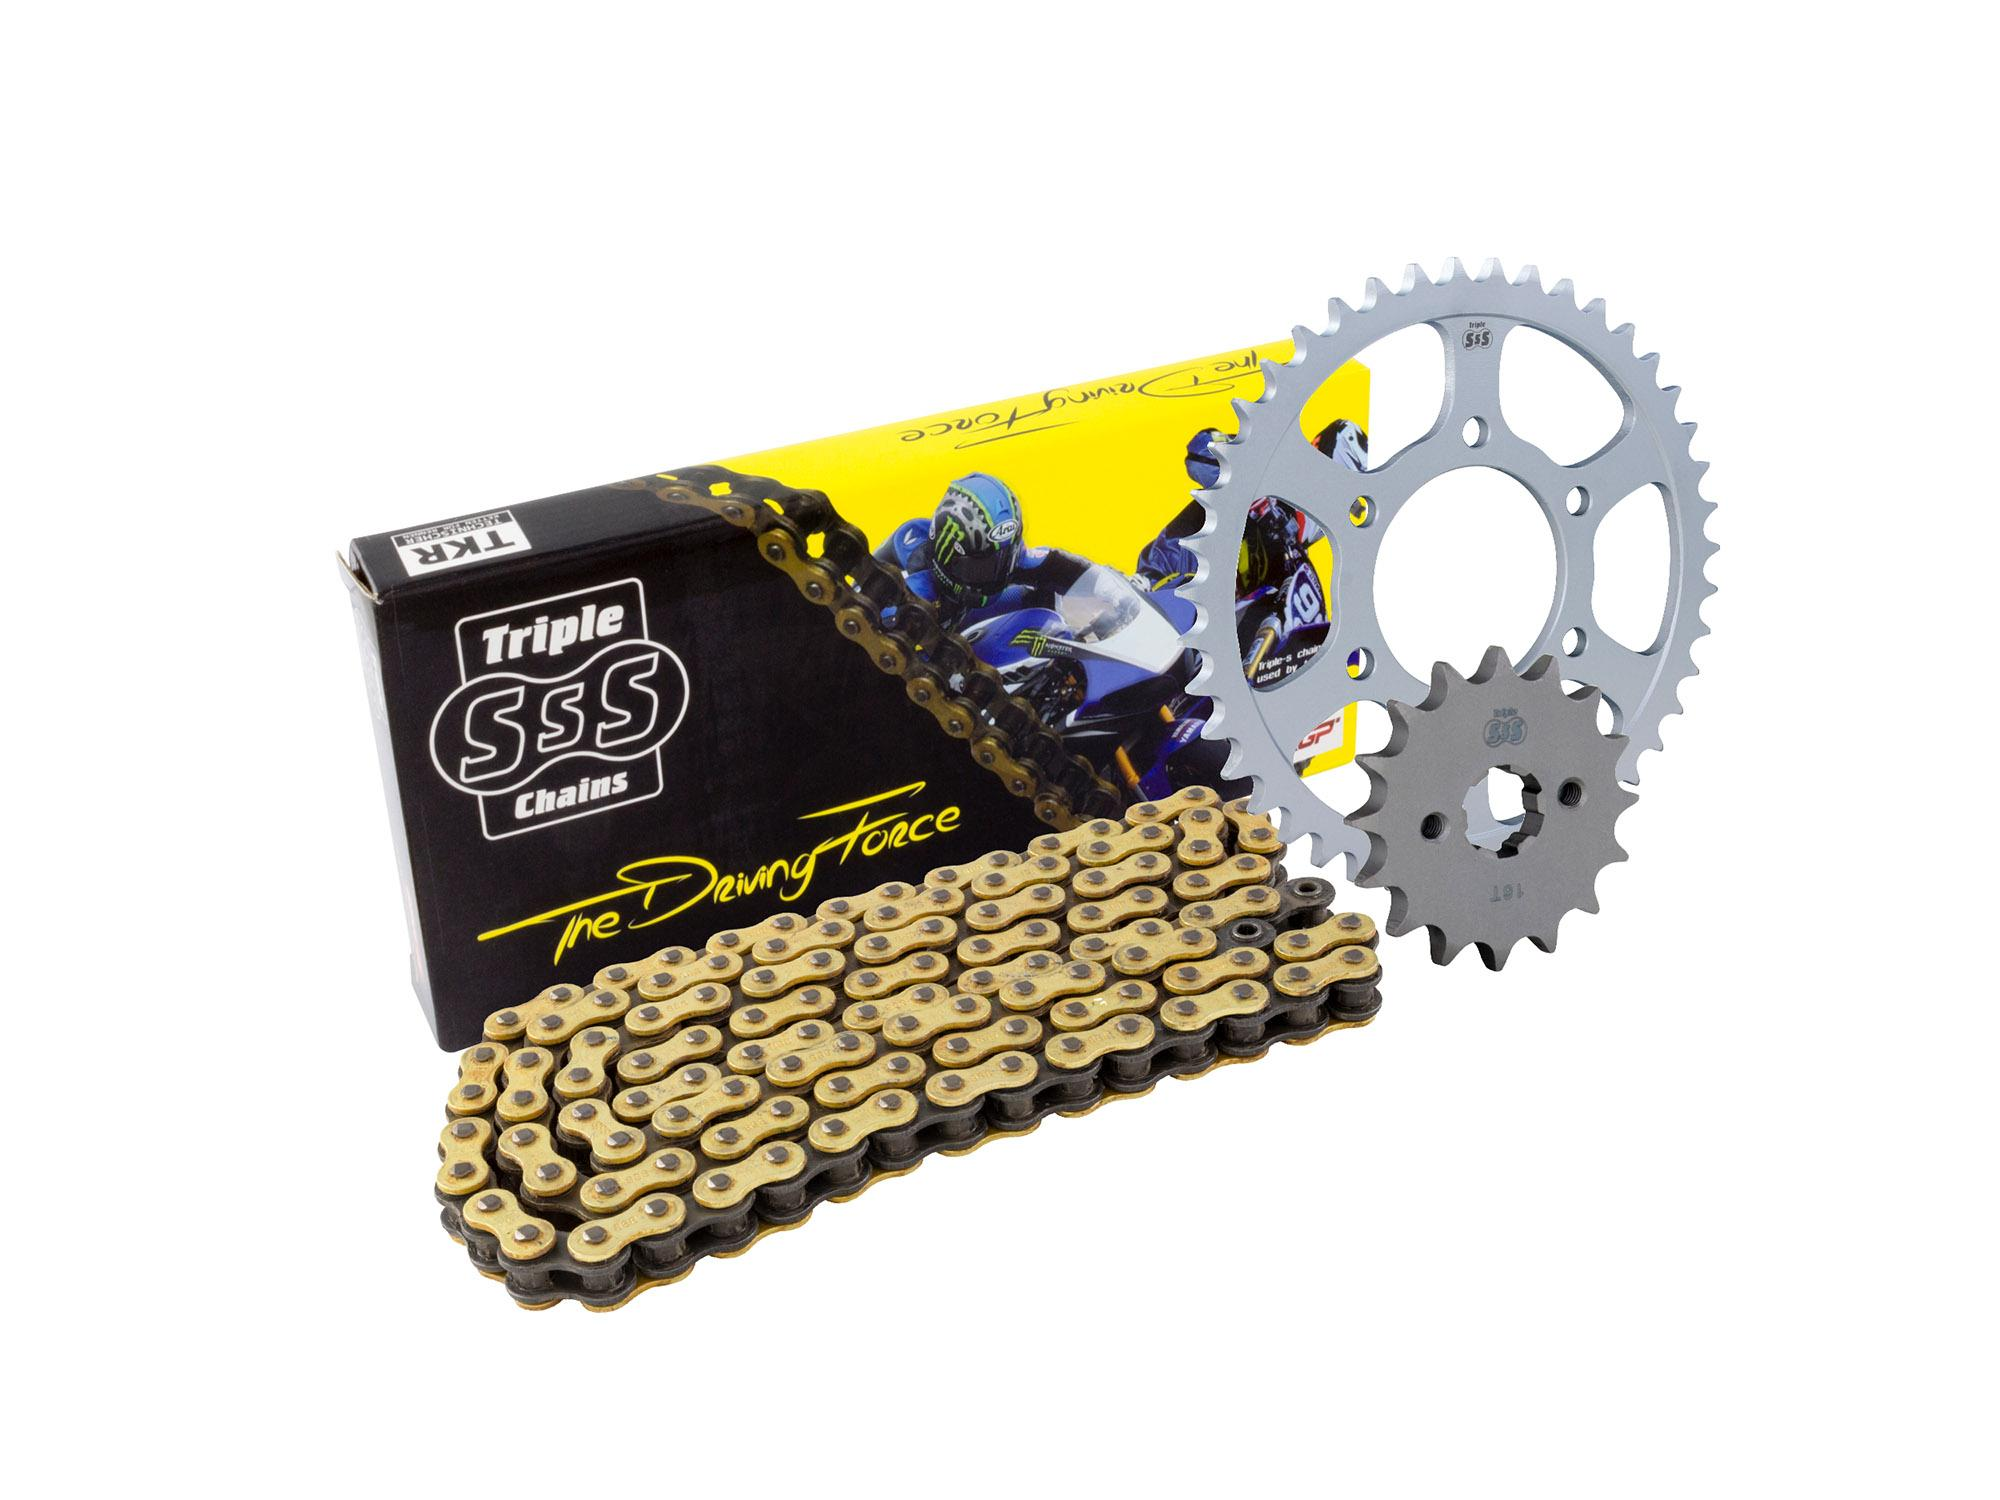 Triumph 800 Tiger 11-16 Chain & Sprocket Kit: 16T Front, 50T Rear, HD O-Ring Gold Chain 525H 122 Link